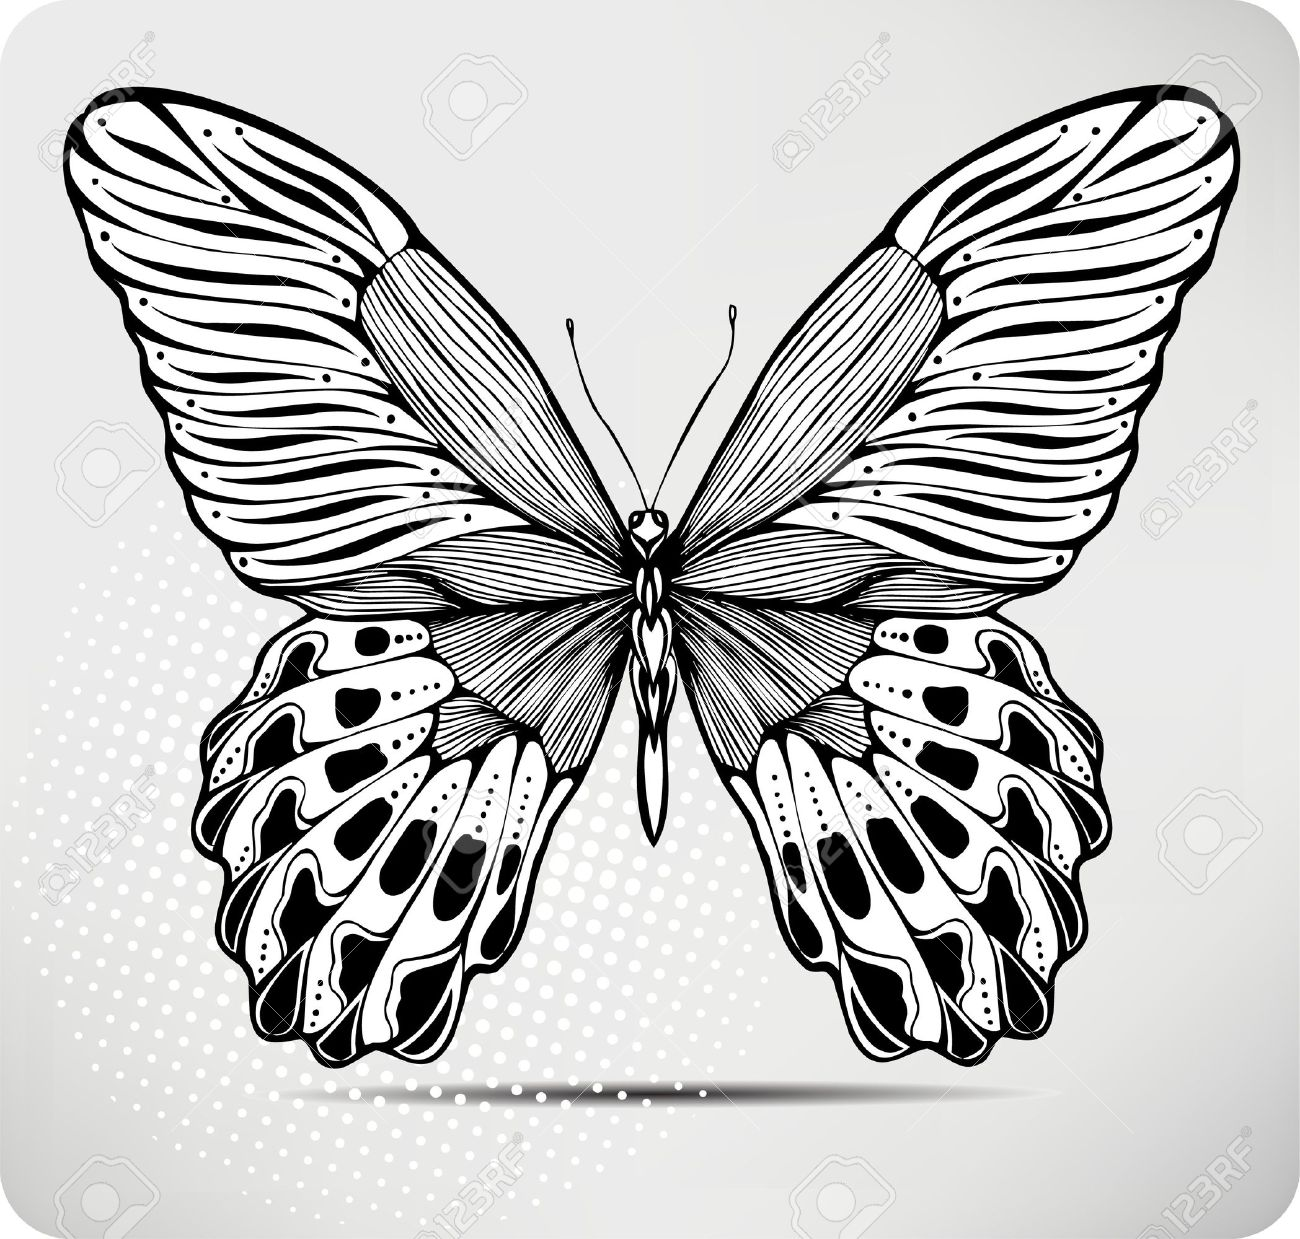 butterfly hand drawing illustration royalty free cliparts